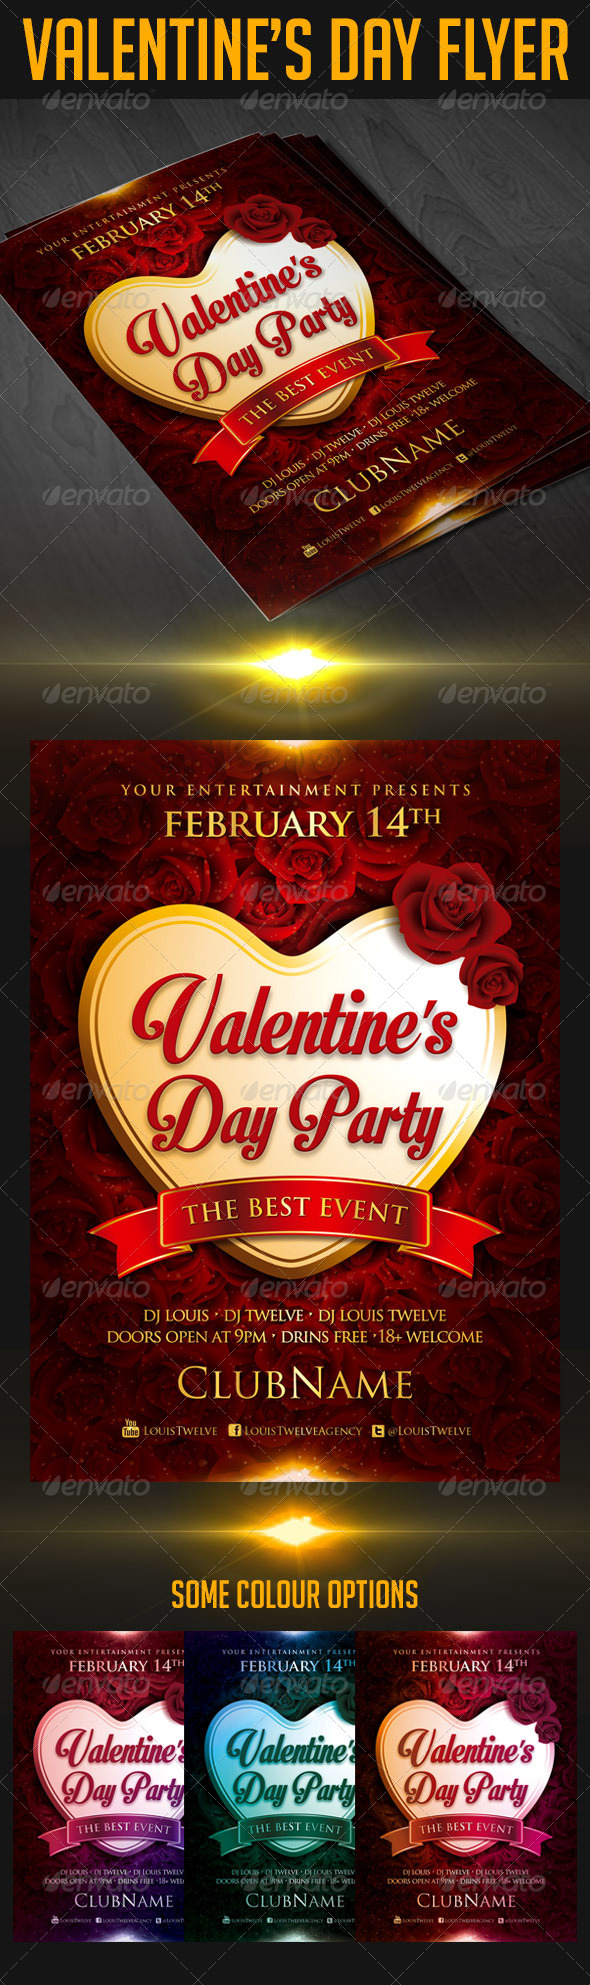 GraphicRiver Valentine s Day Party Flyer 6642384